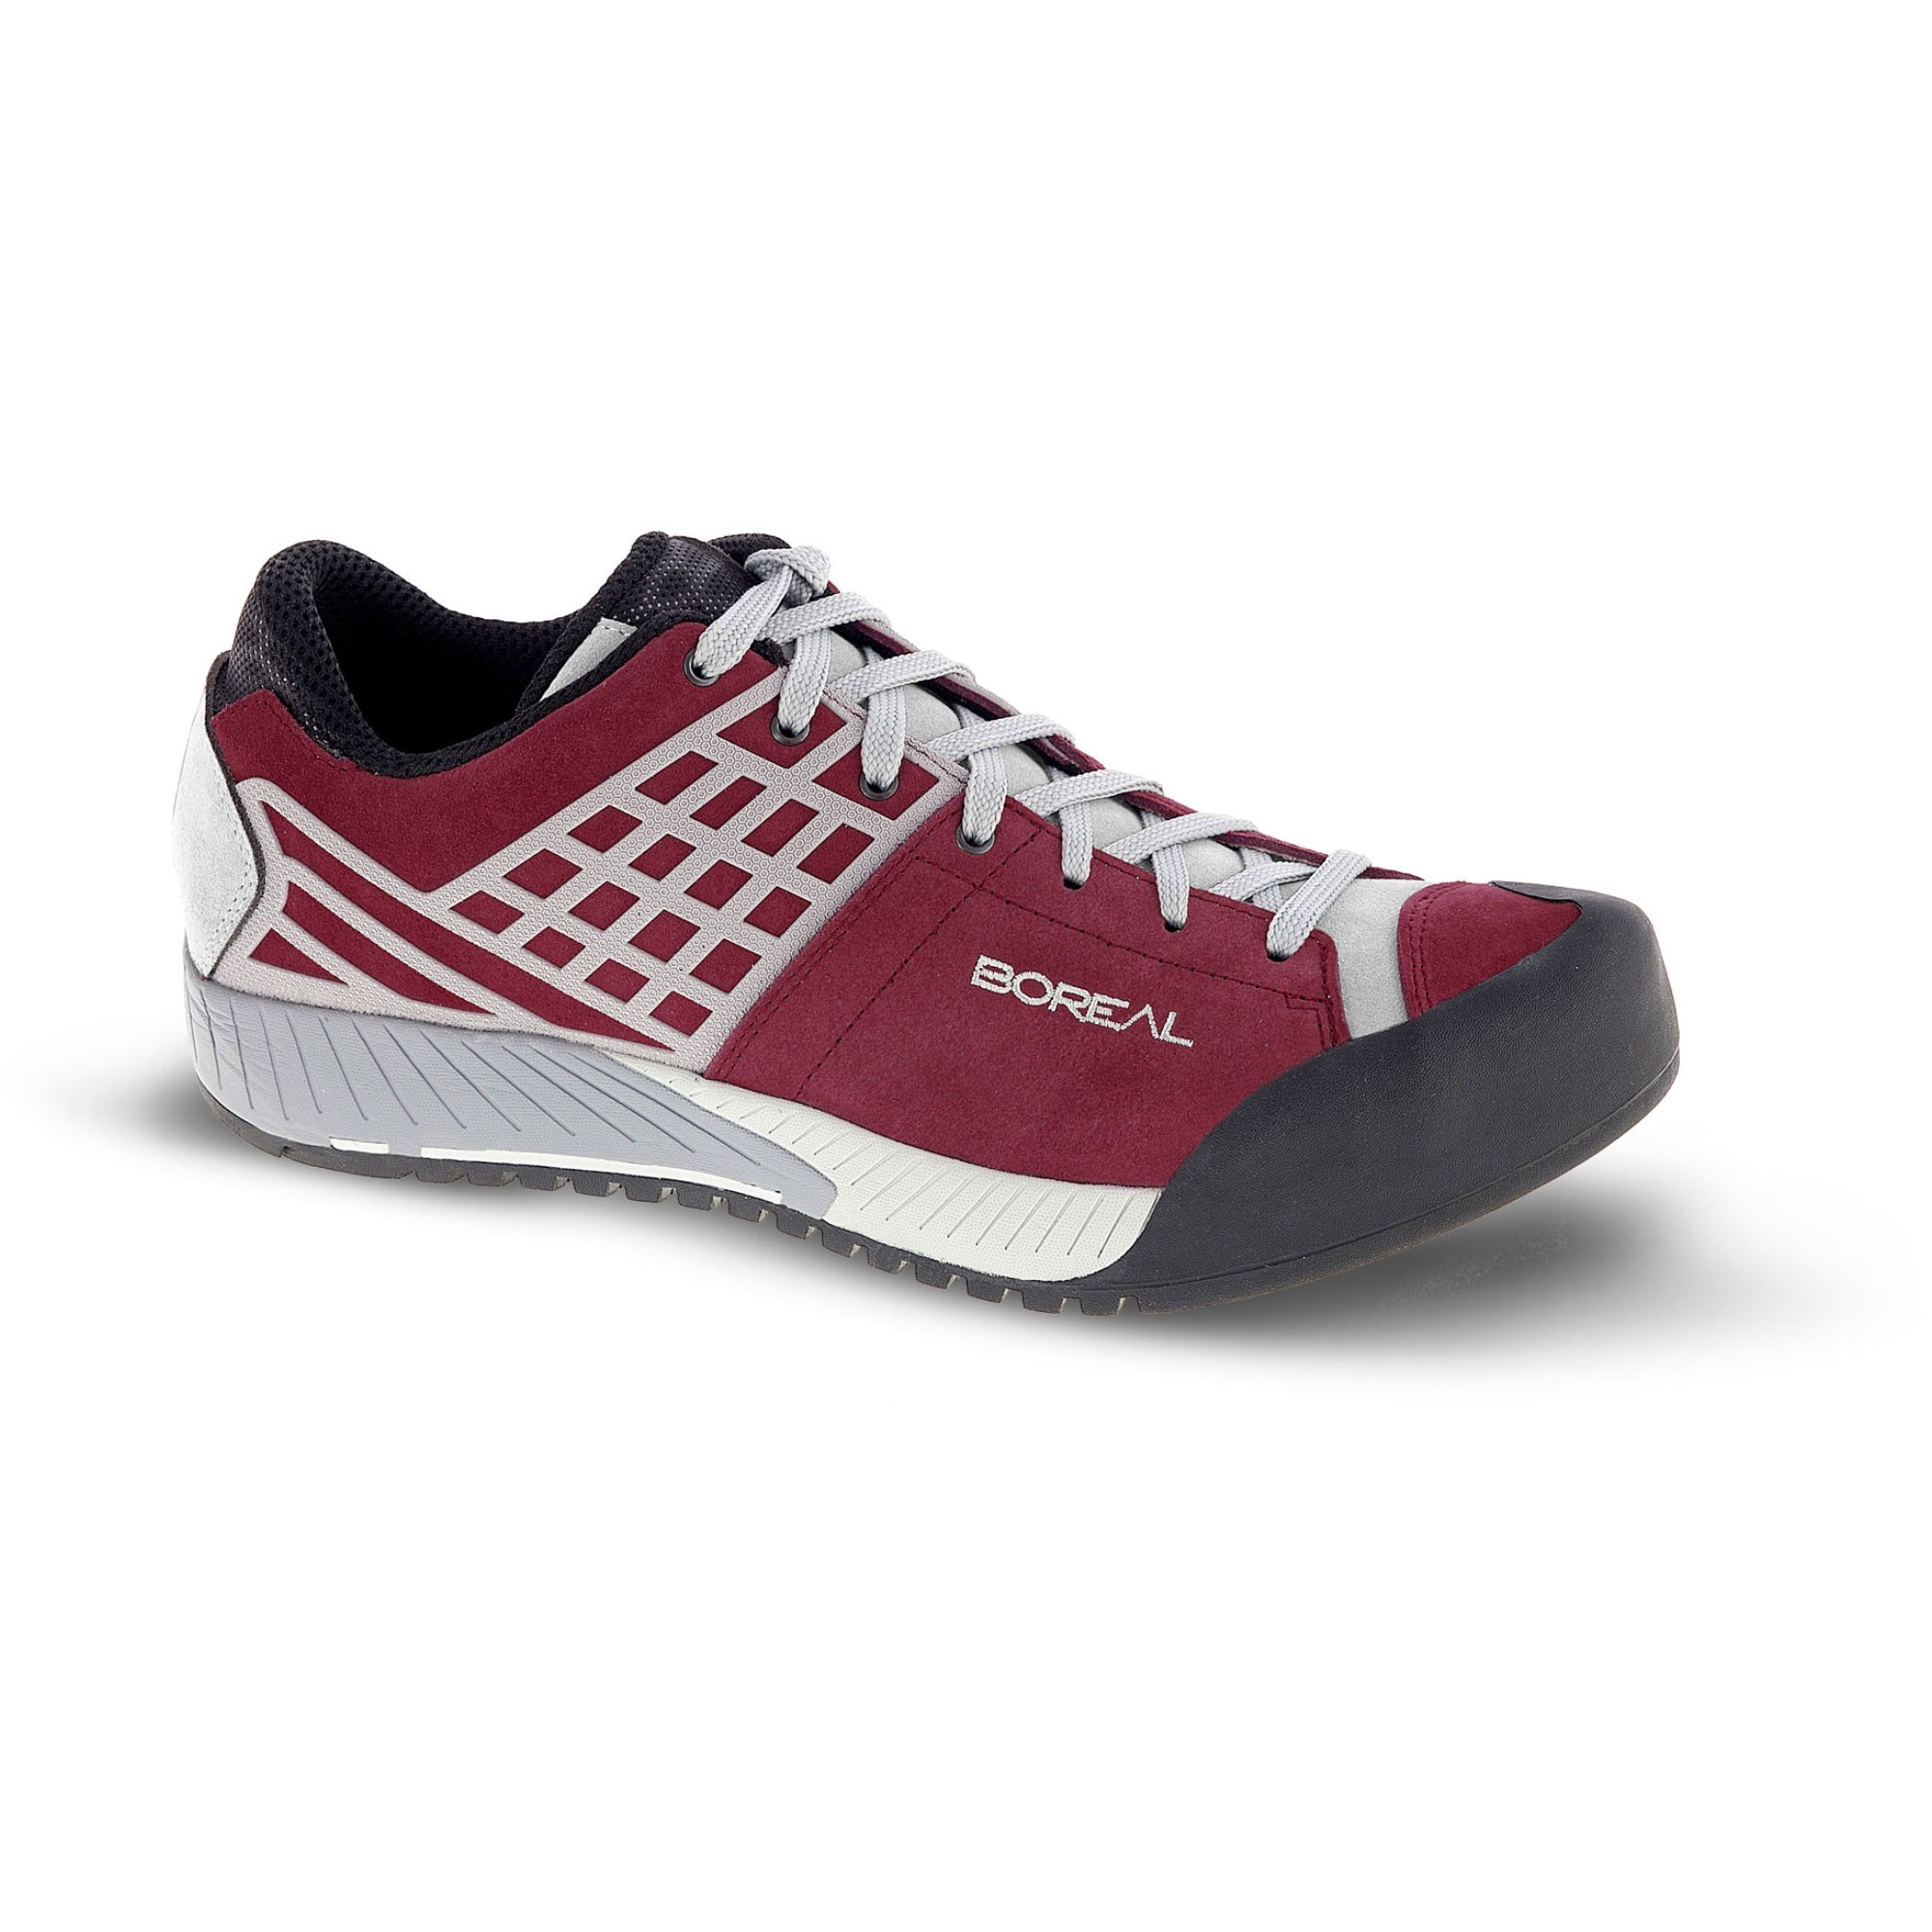 BOREAL - Bamba Women's Shoes - Granate Red